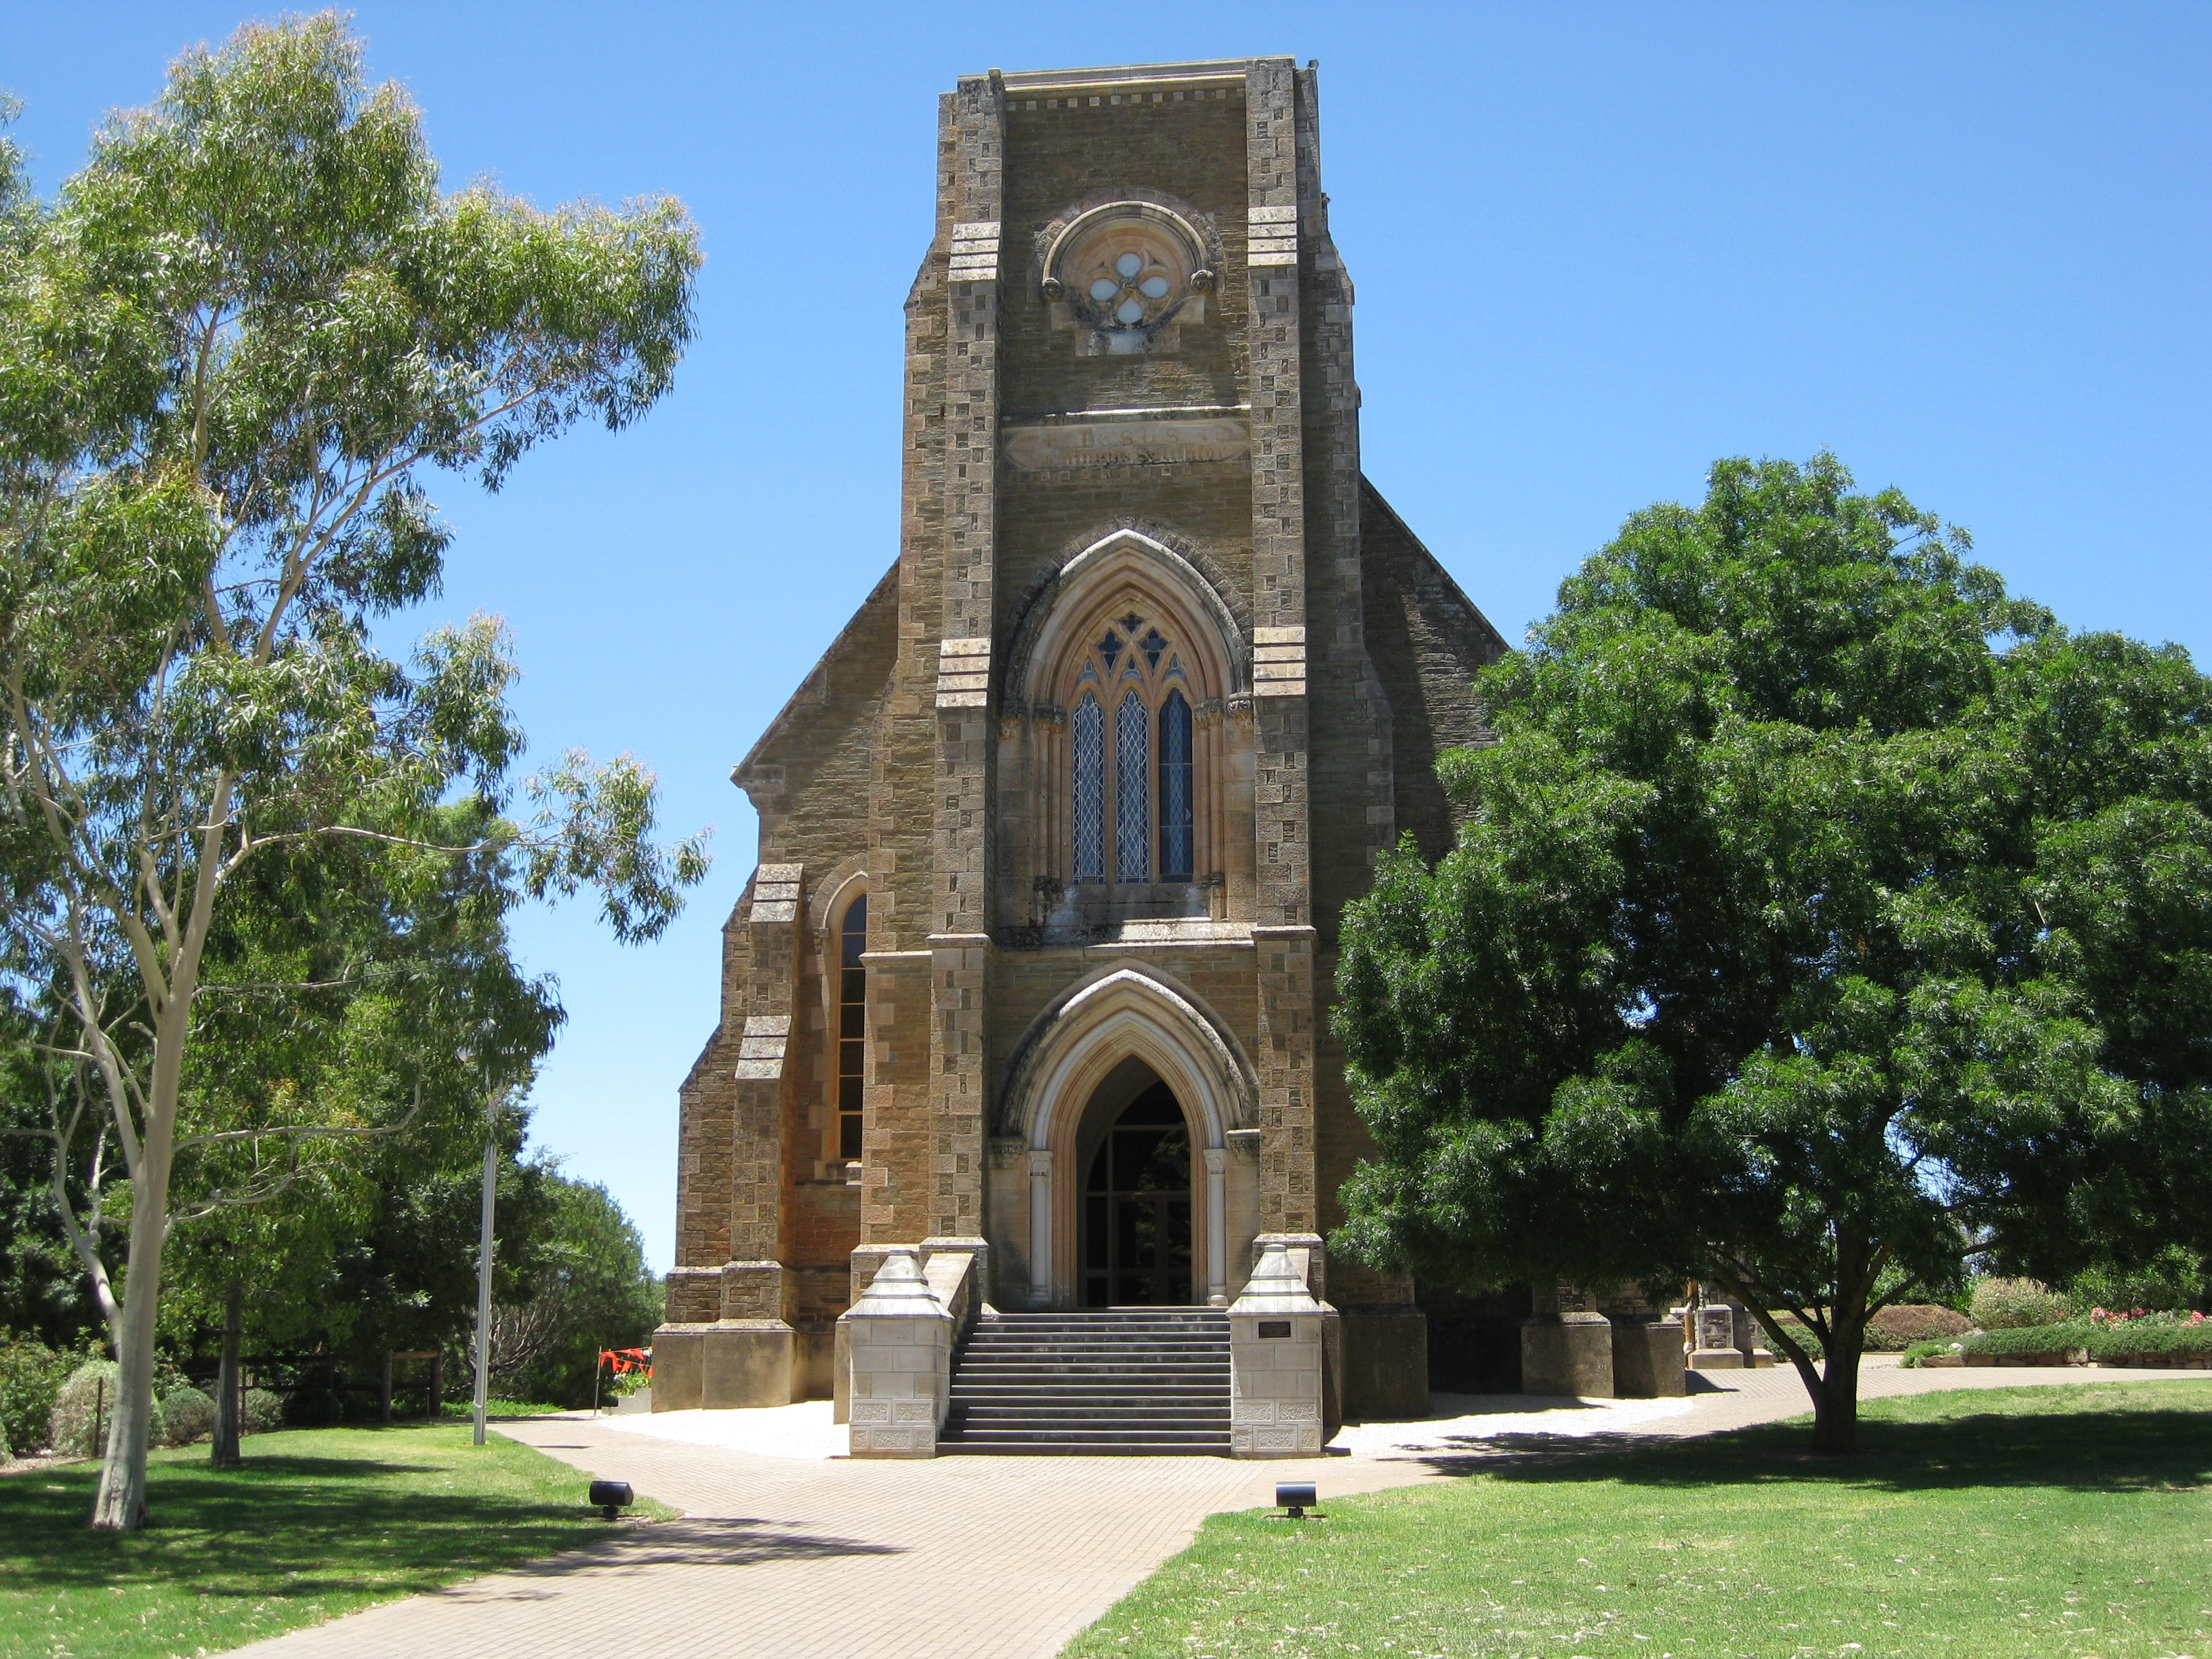 St. Aloysius Church which is located in Southern Australia